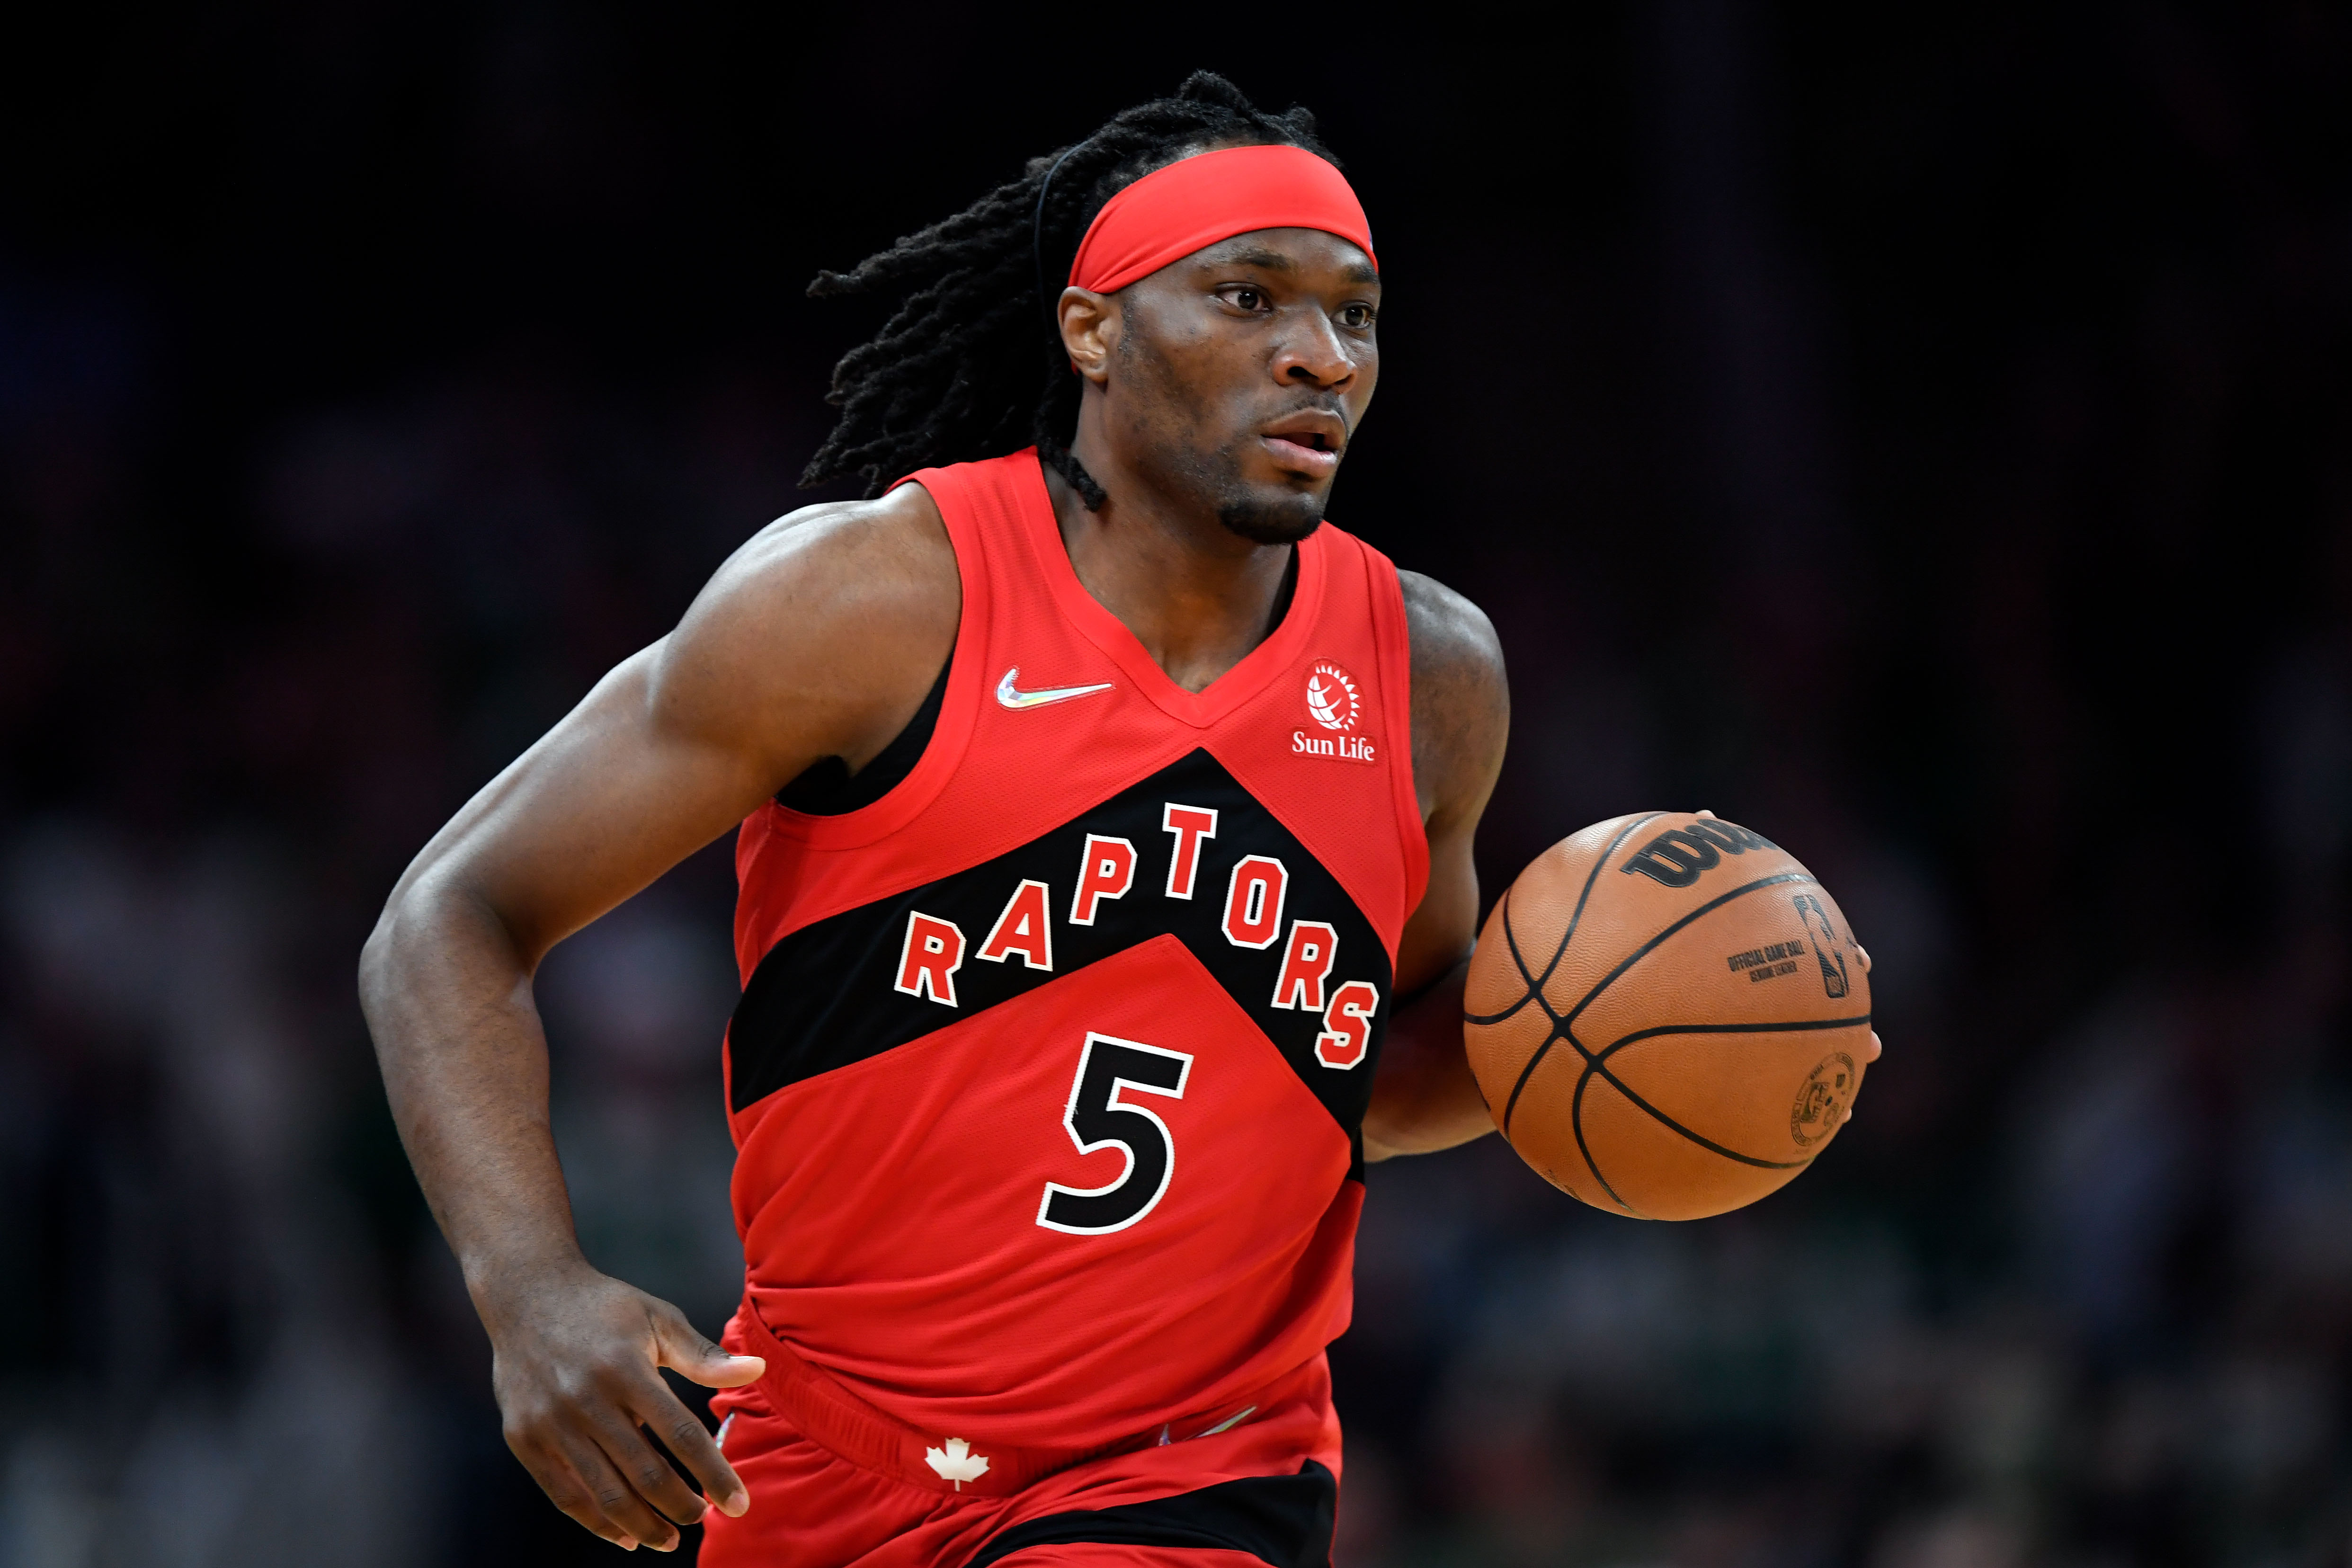 Toronto Raptors forward Precious Achiuwa (5) dribbles the ball during the first half of a game against the Boston Celtics at the TD Garden.